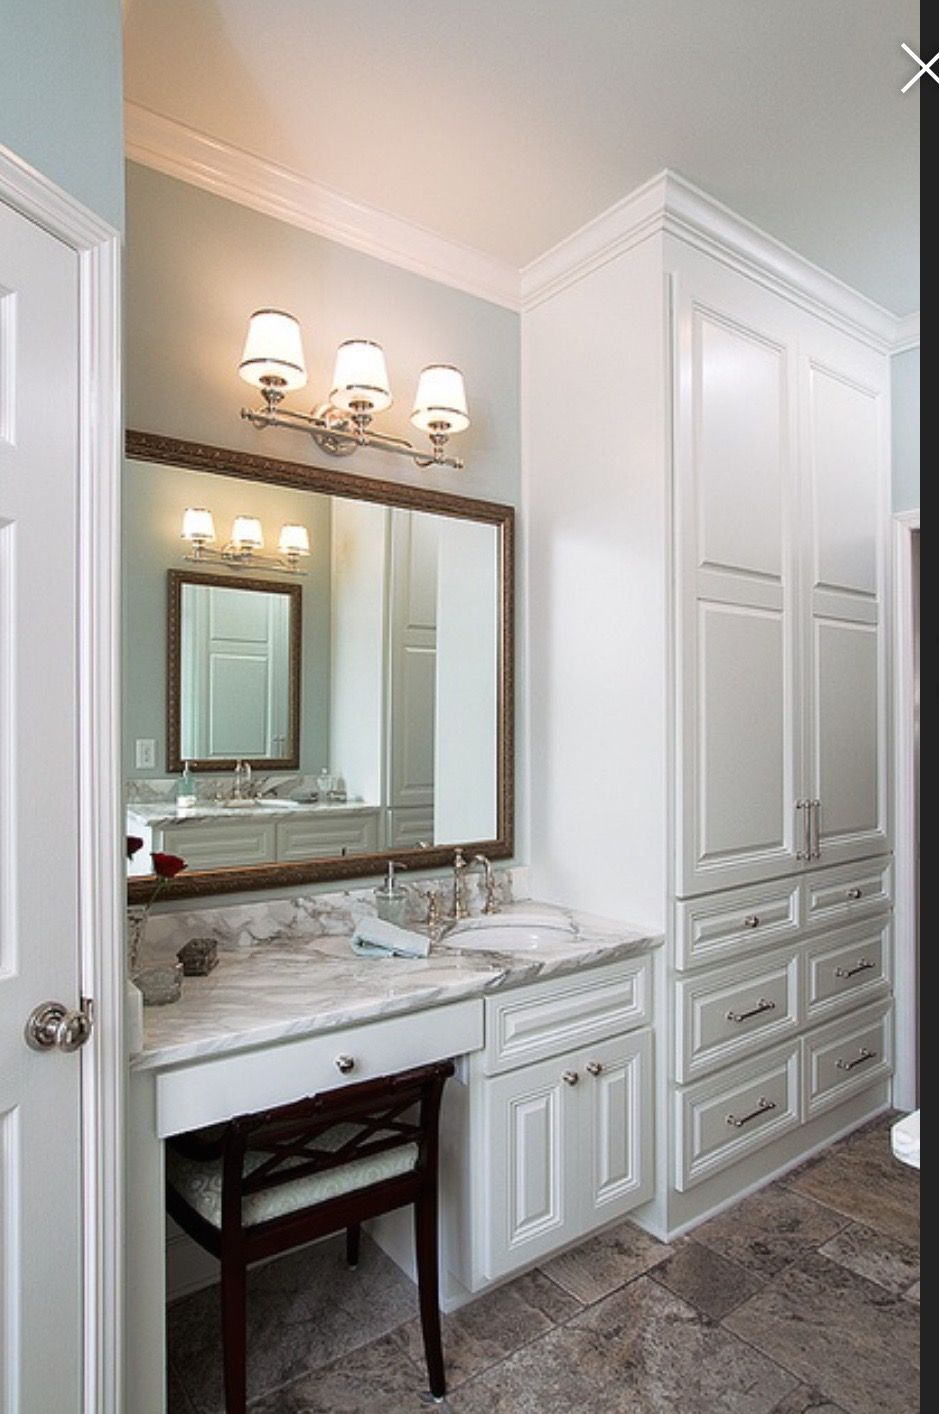 Walk in closet with a vanity & sink Small bathroom